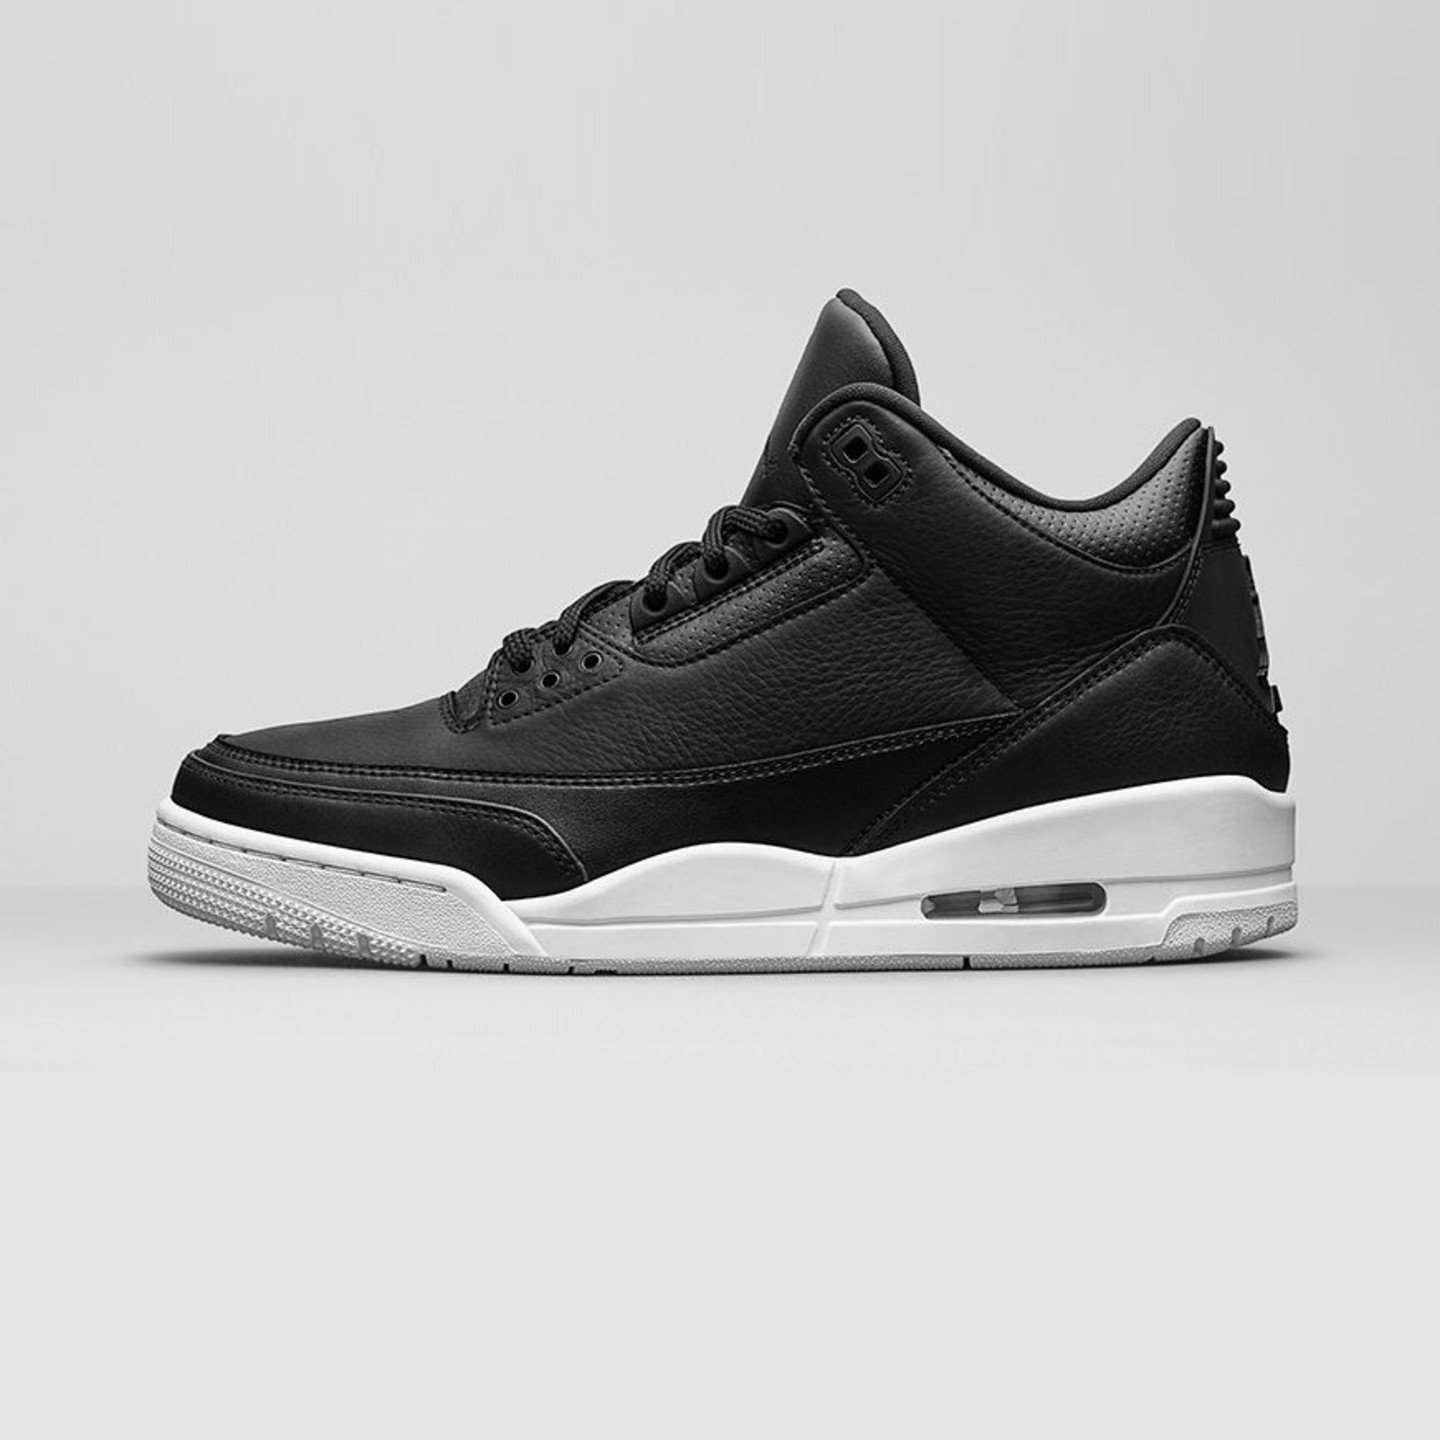 Jordan Air Jordan 3 Retro 'Cyber Monday' Black / White 136064-020-43